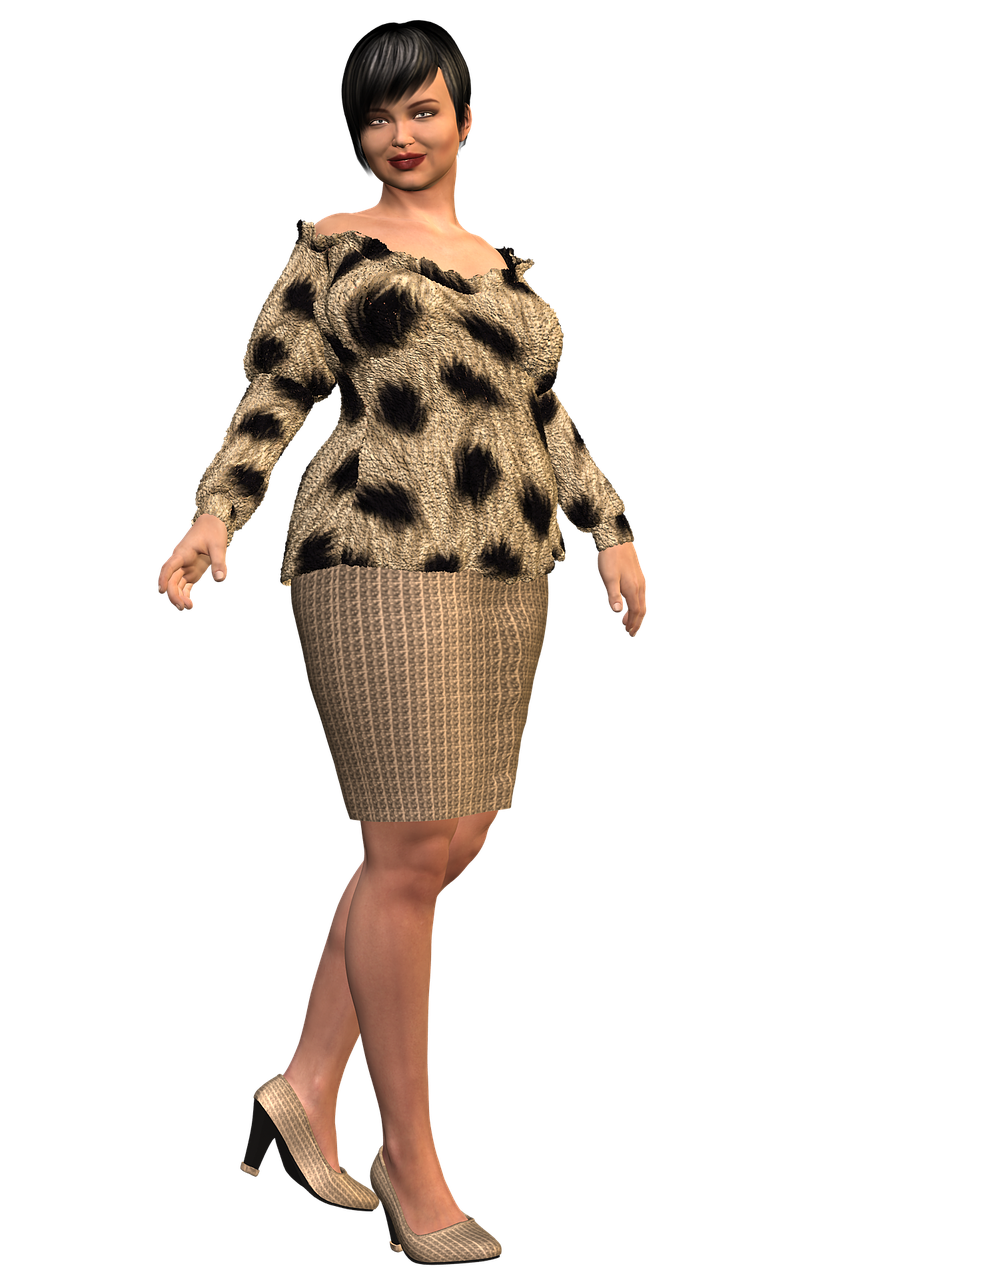 Sassy Lady Bbw Woman Female PNG.